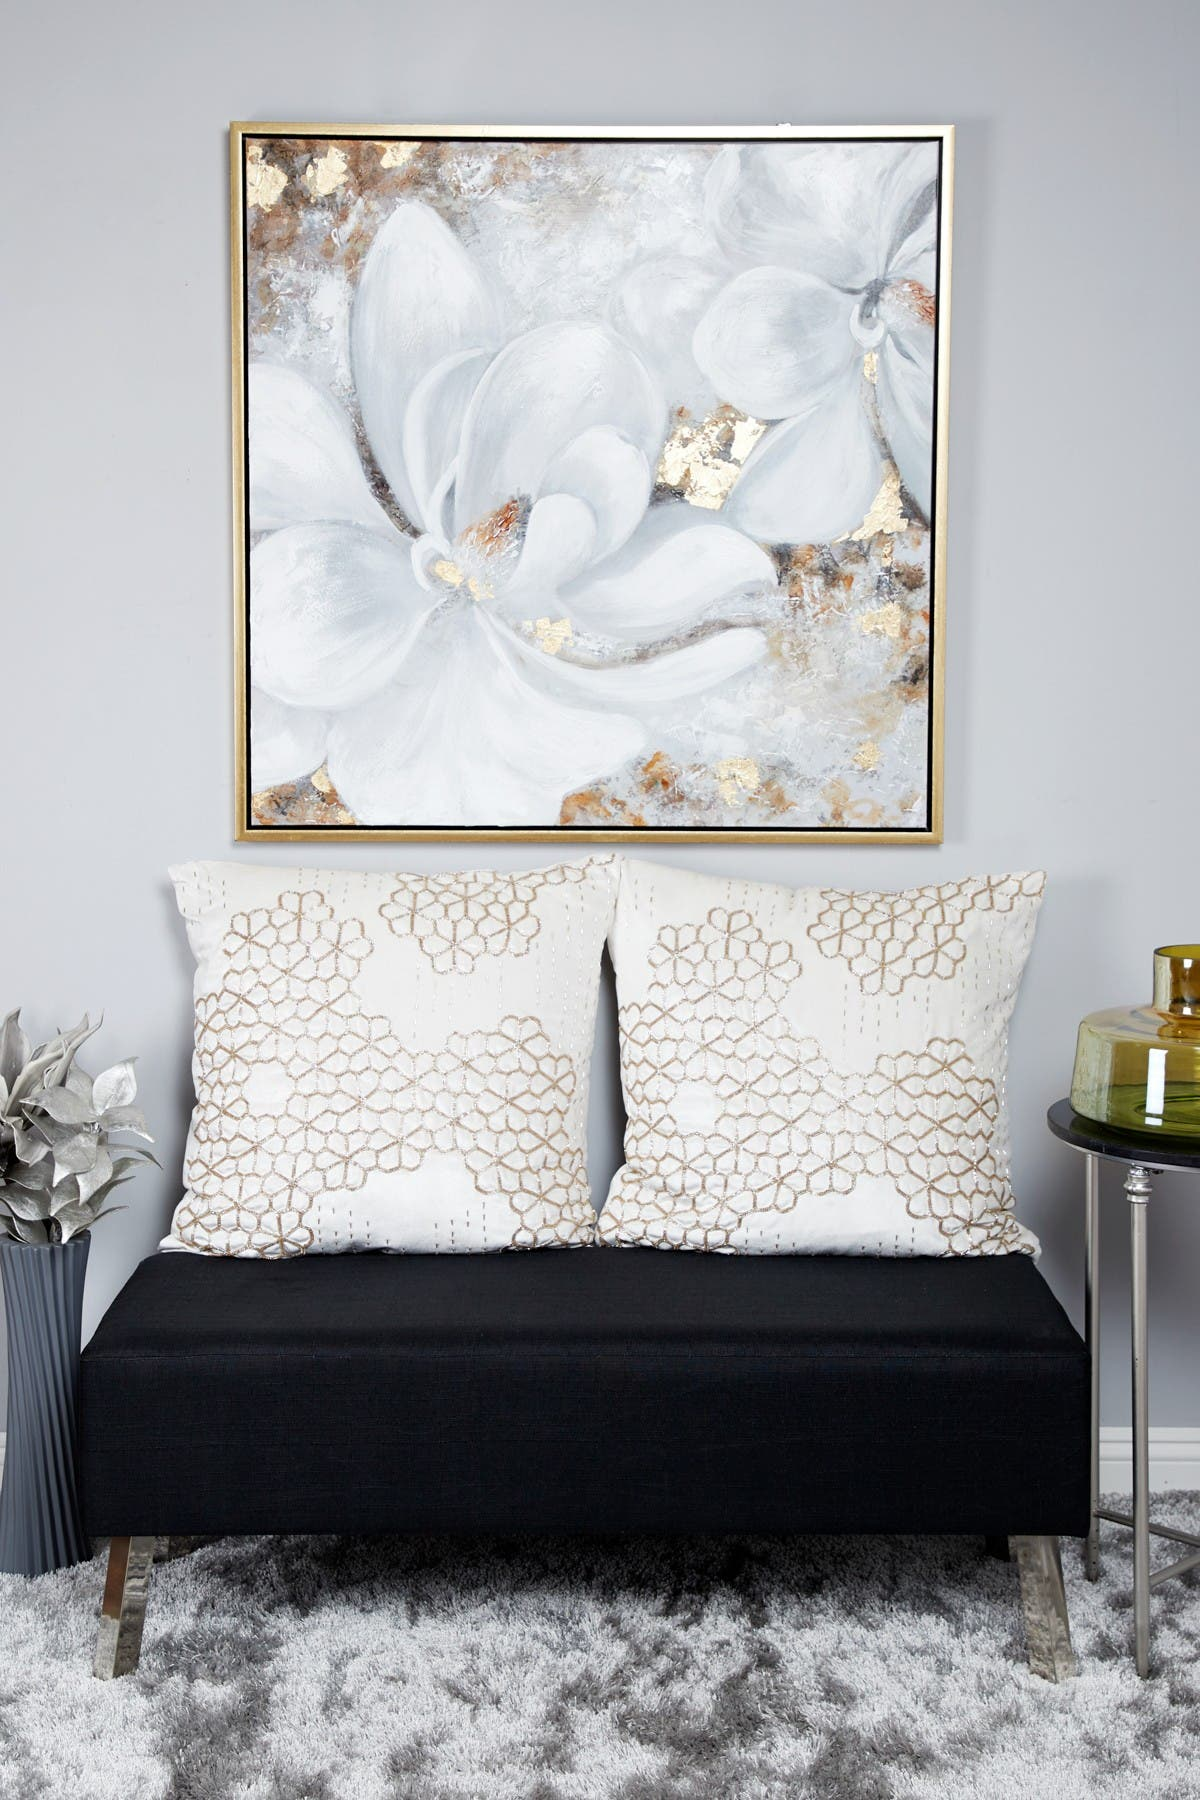 Willow Row Large Metallic Gold & White Gardenia Acrylic Painting In Gold Frame at Nordstrom Rack